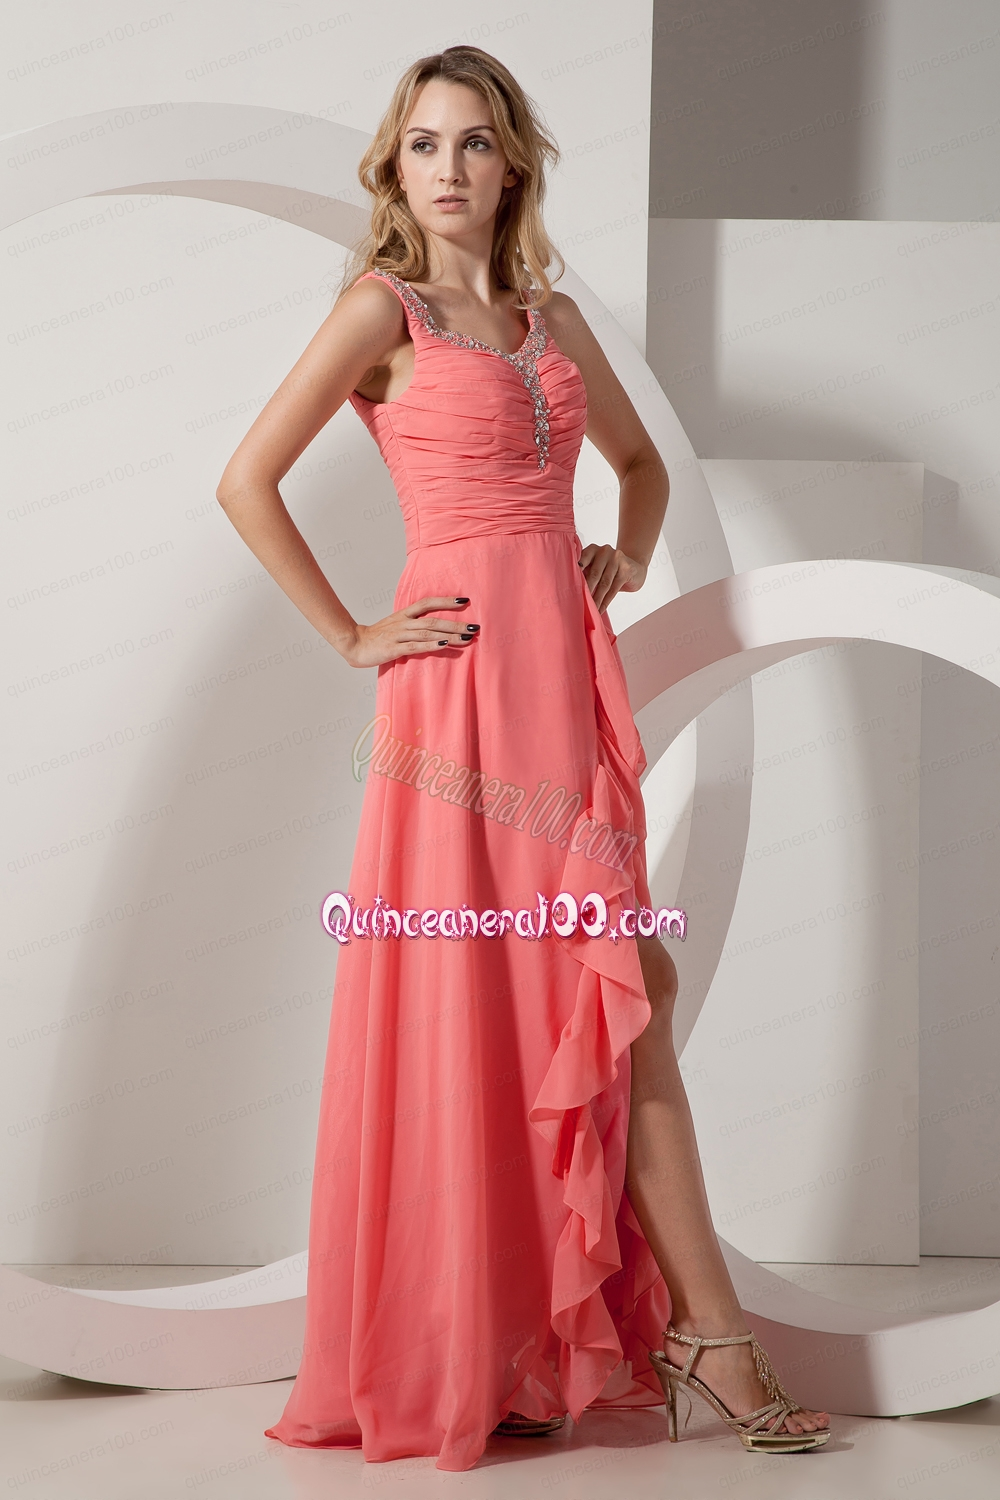 afd37ace55c Watermelon Red Empire V Neck Floor Length Chiffon Beading Mother of the  Dress. triumph